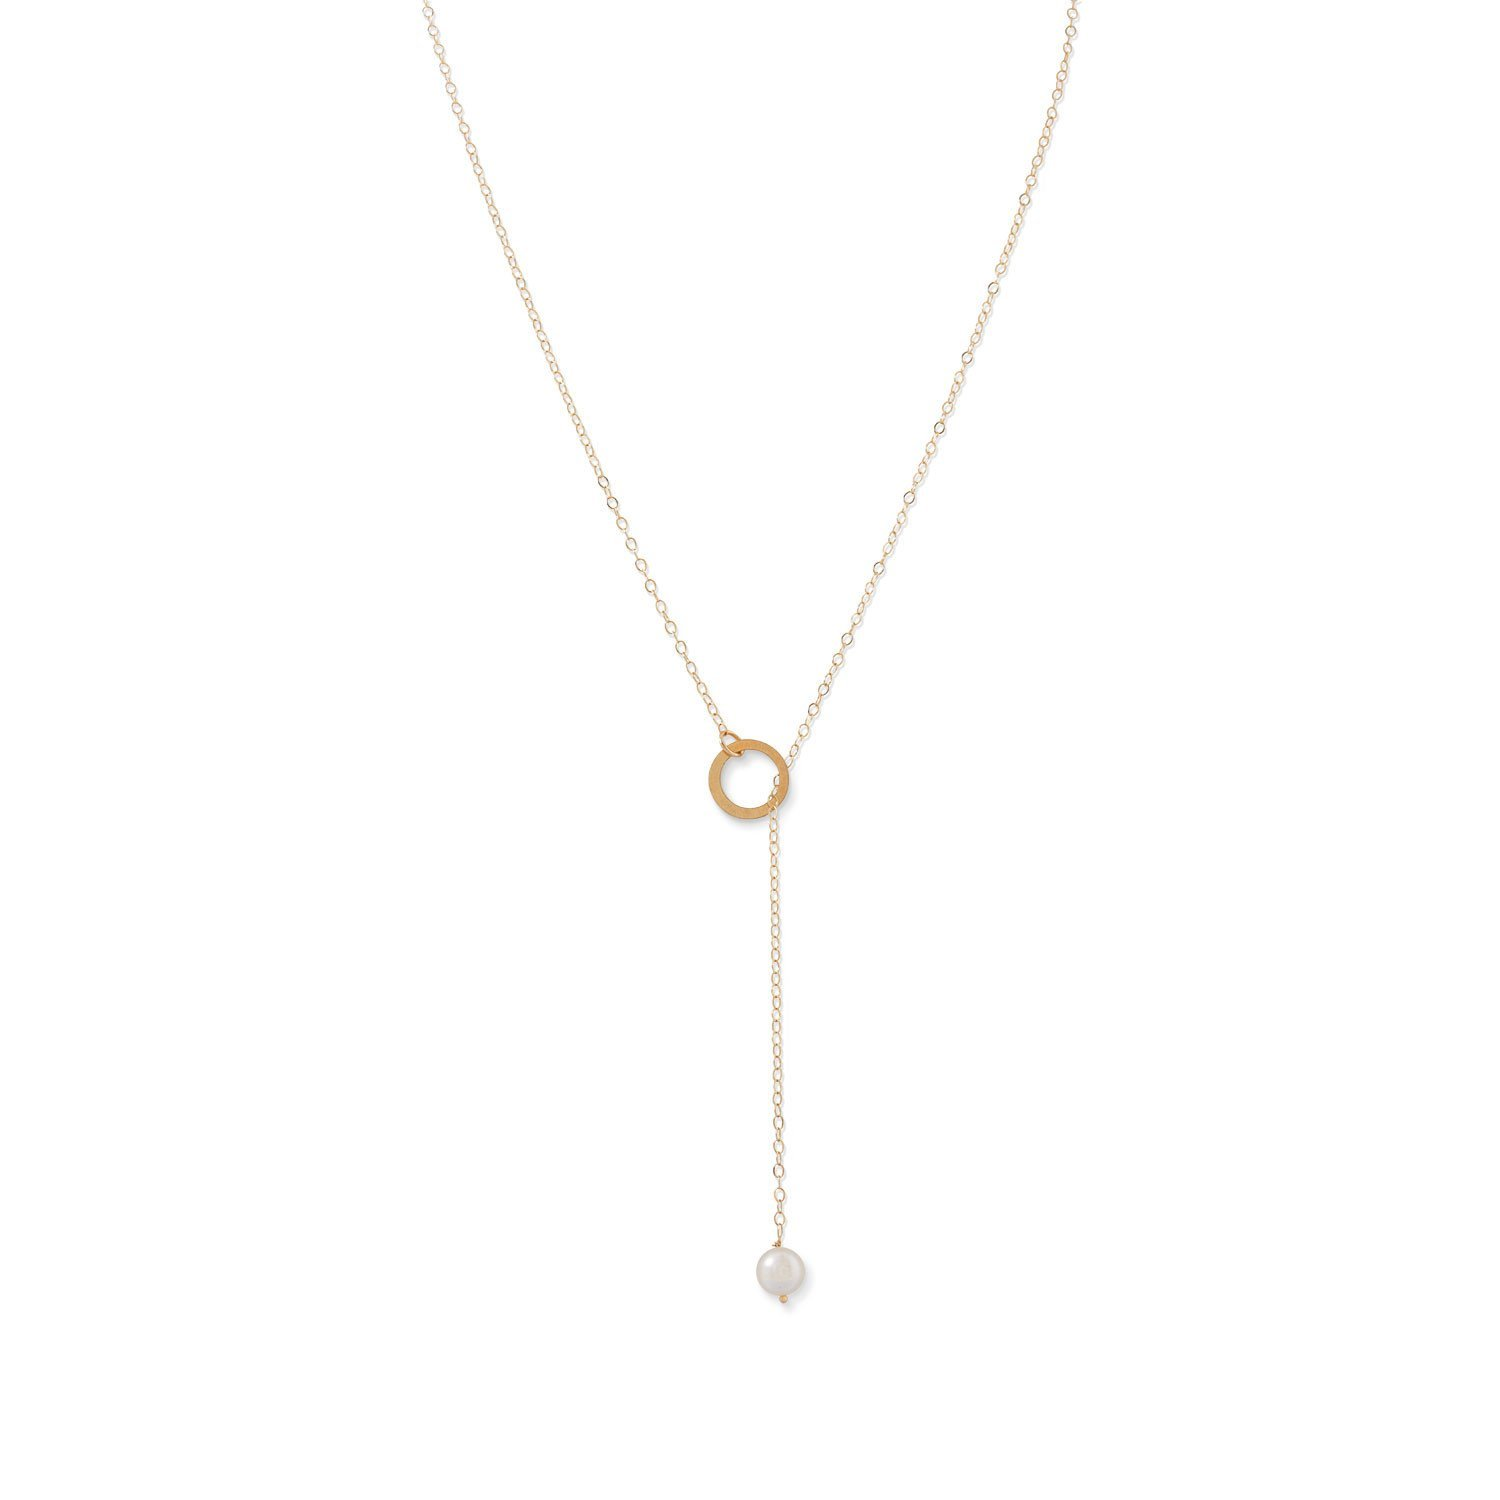 Cultured Freshwater Pearl Necklace Y-style Lariat 14k Yellow Gold by AzureBella Jewelry